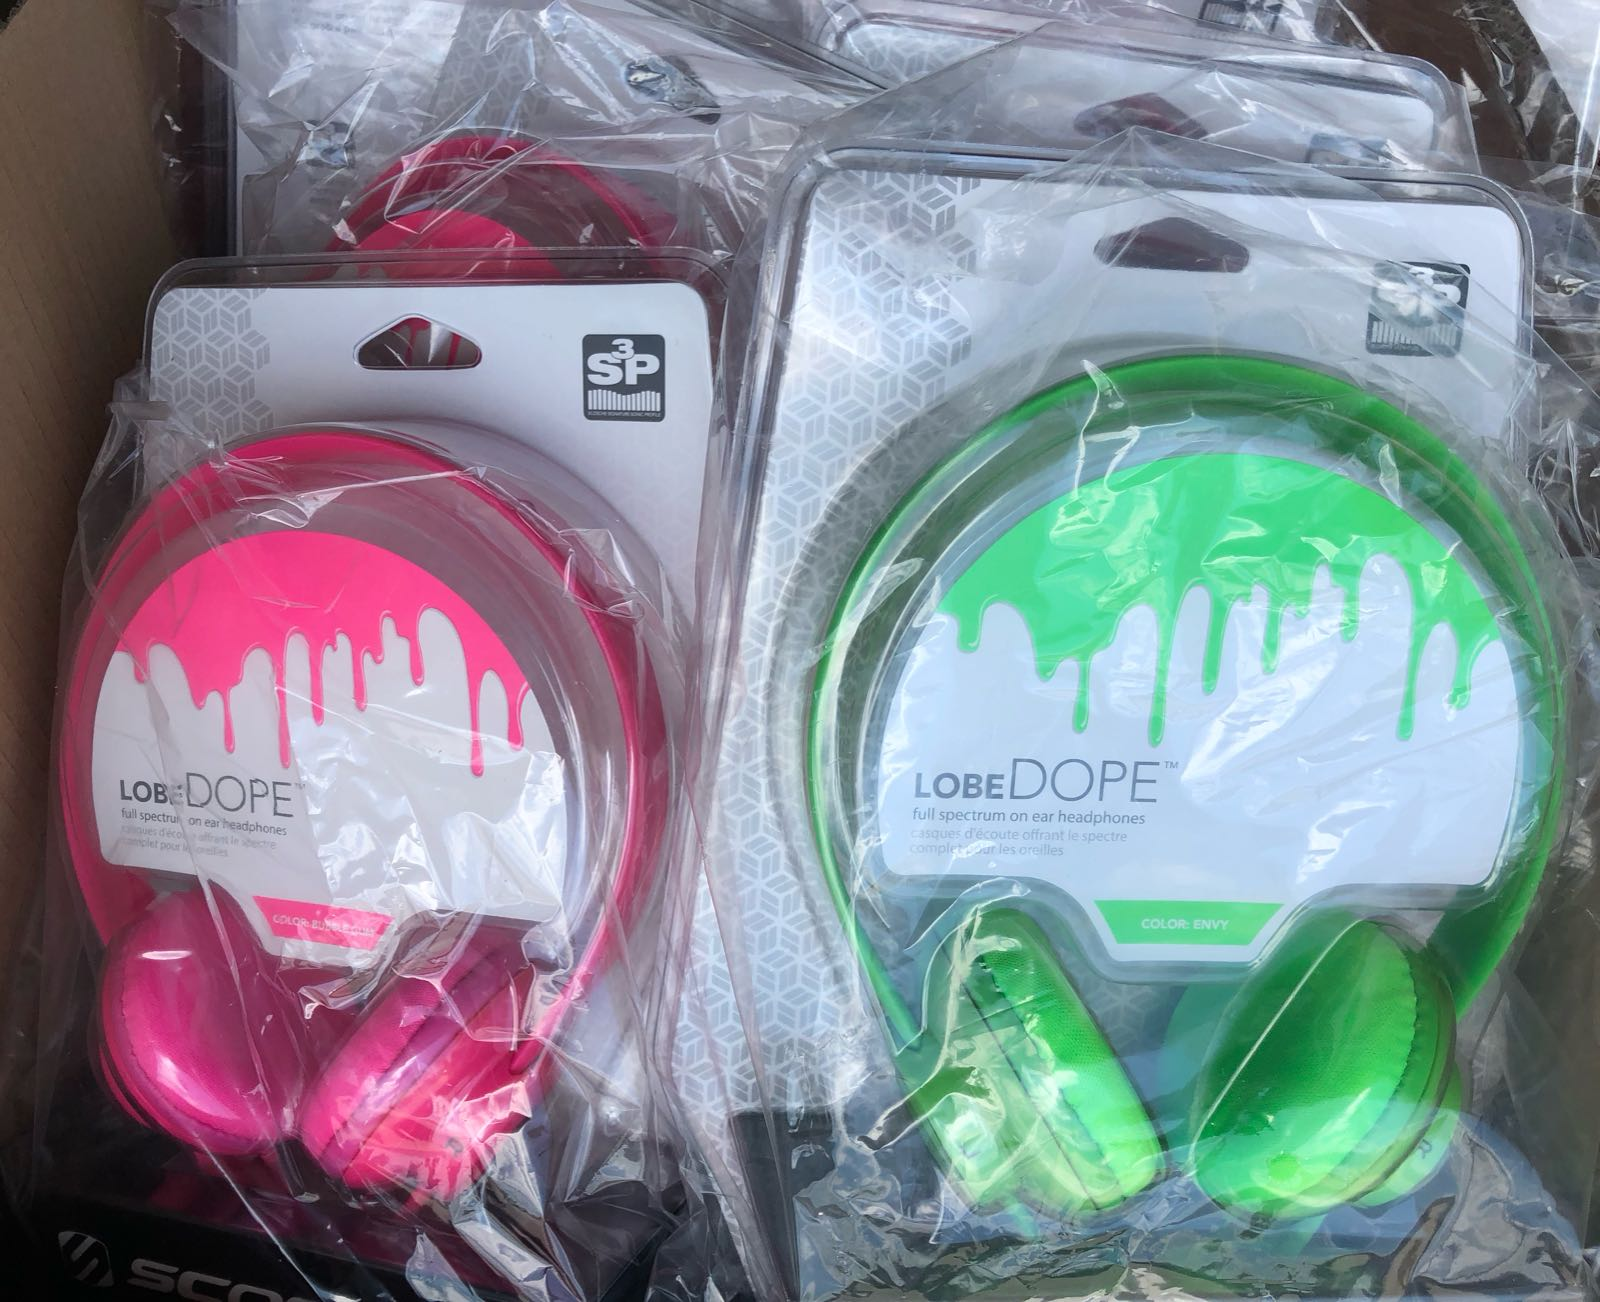 WTS: Scoshe LobeDOPE HEADPHONES W/BUILT IN MIC AND MUSIC CONTROLS!! Model: SPH400. ONLY $4.75!! @GLI